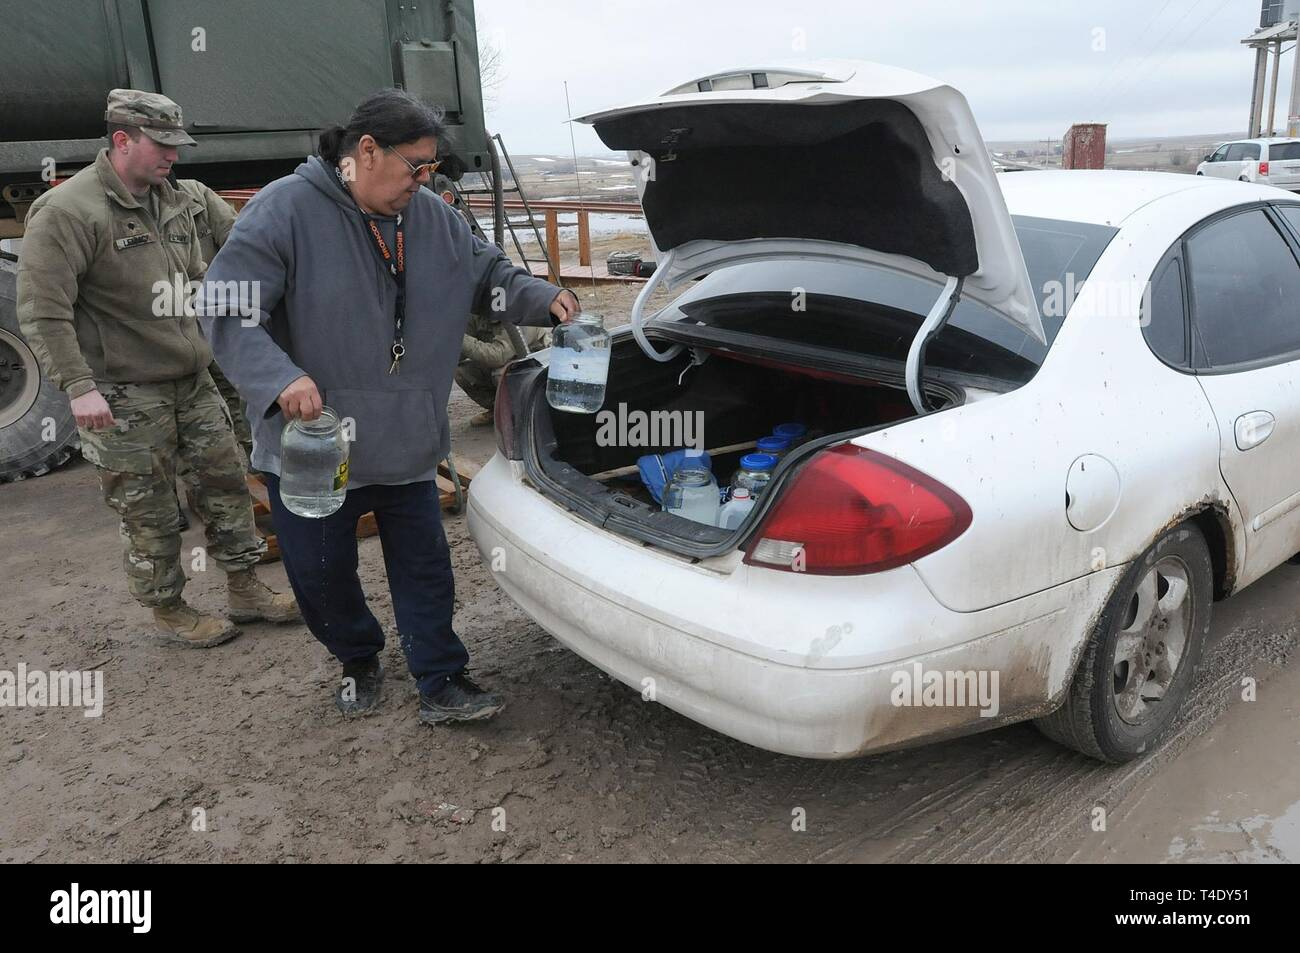 Lester Rowland loads containers of drinkable water into his car with the help of U.S. Army Spc. Tracy Lennick, Company A, 139th Brigade Support Battalion, South Dakota Army National Guard, at Sharps Corner on the Pine Ridge Reservation, March 25, 2019. Thirteen SDARNG Soldiers were activated for state duty in Pine Ridge after a county waterline failed due to extreme flooding leaving residents in seven communities without water in their homes. Stock Photo